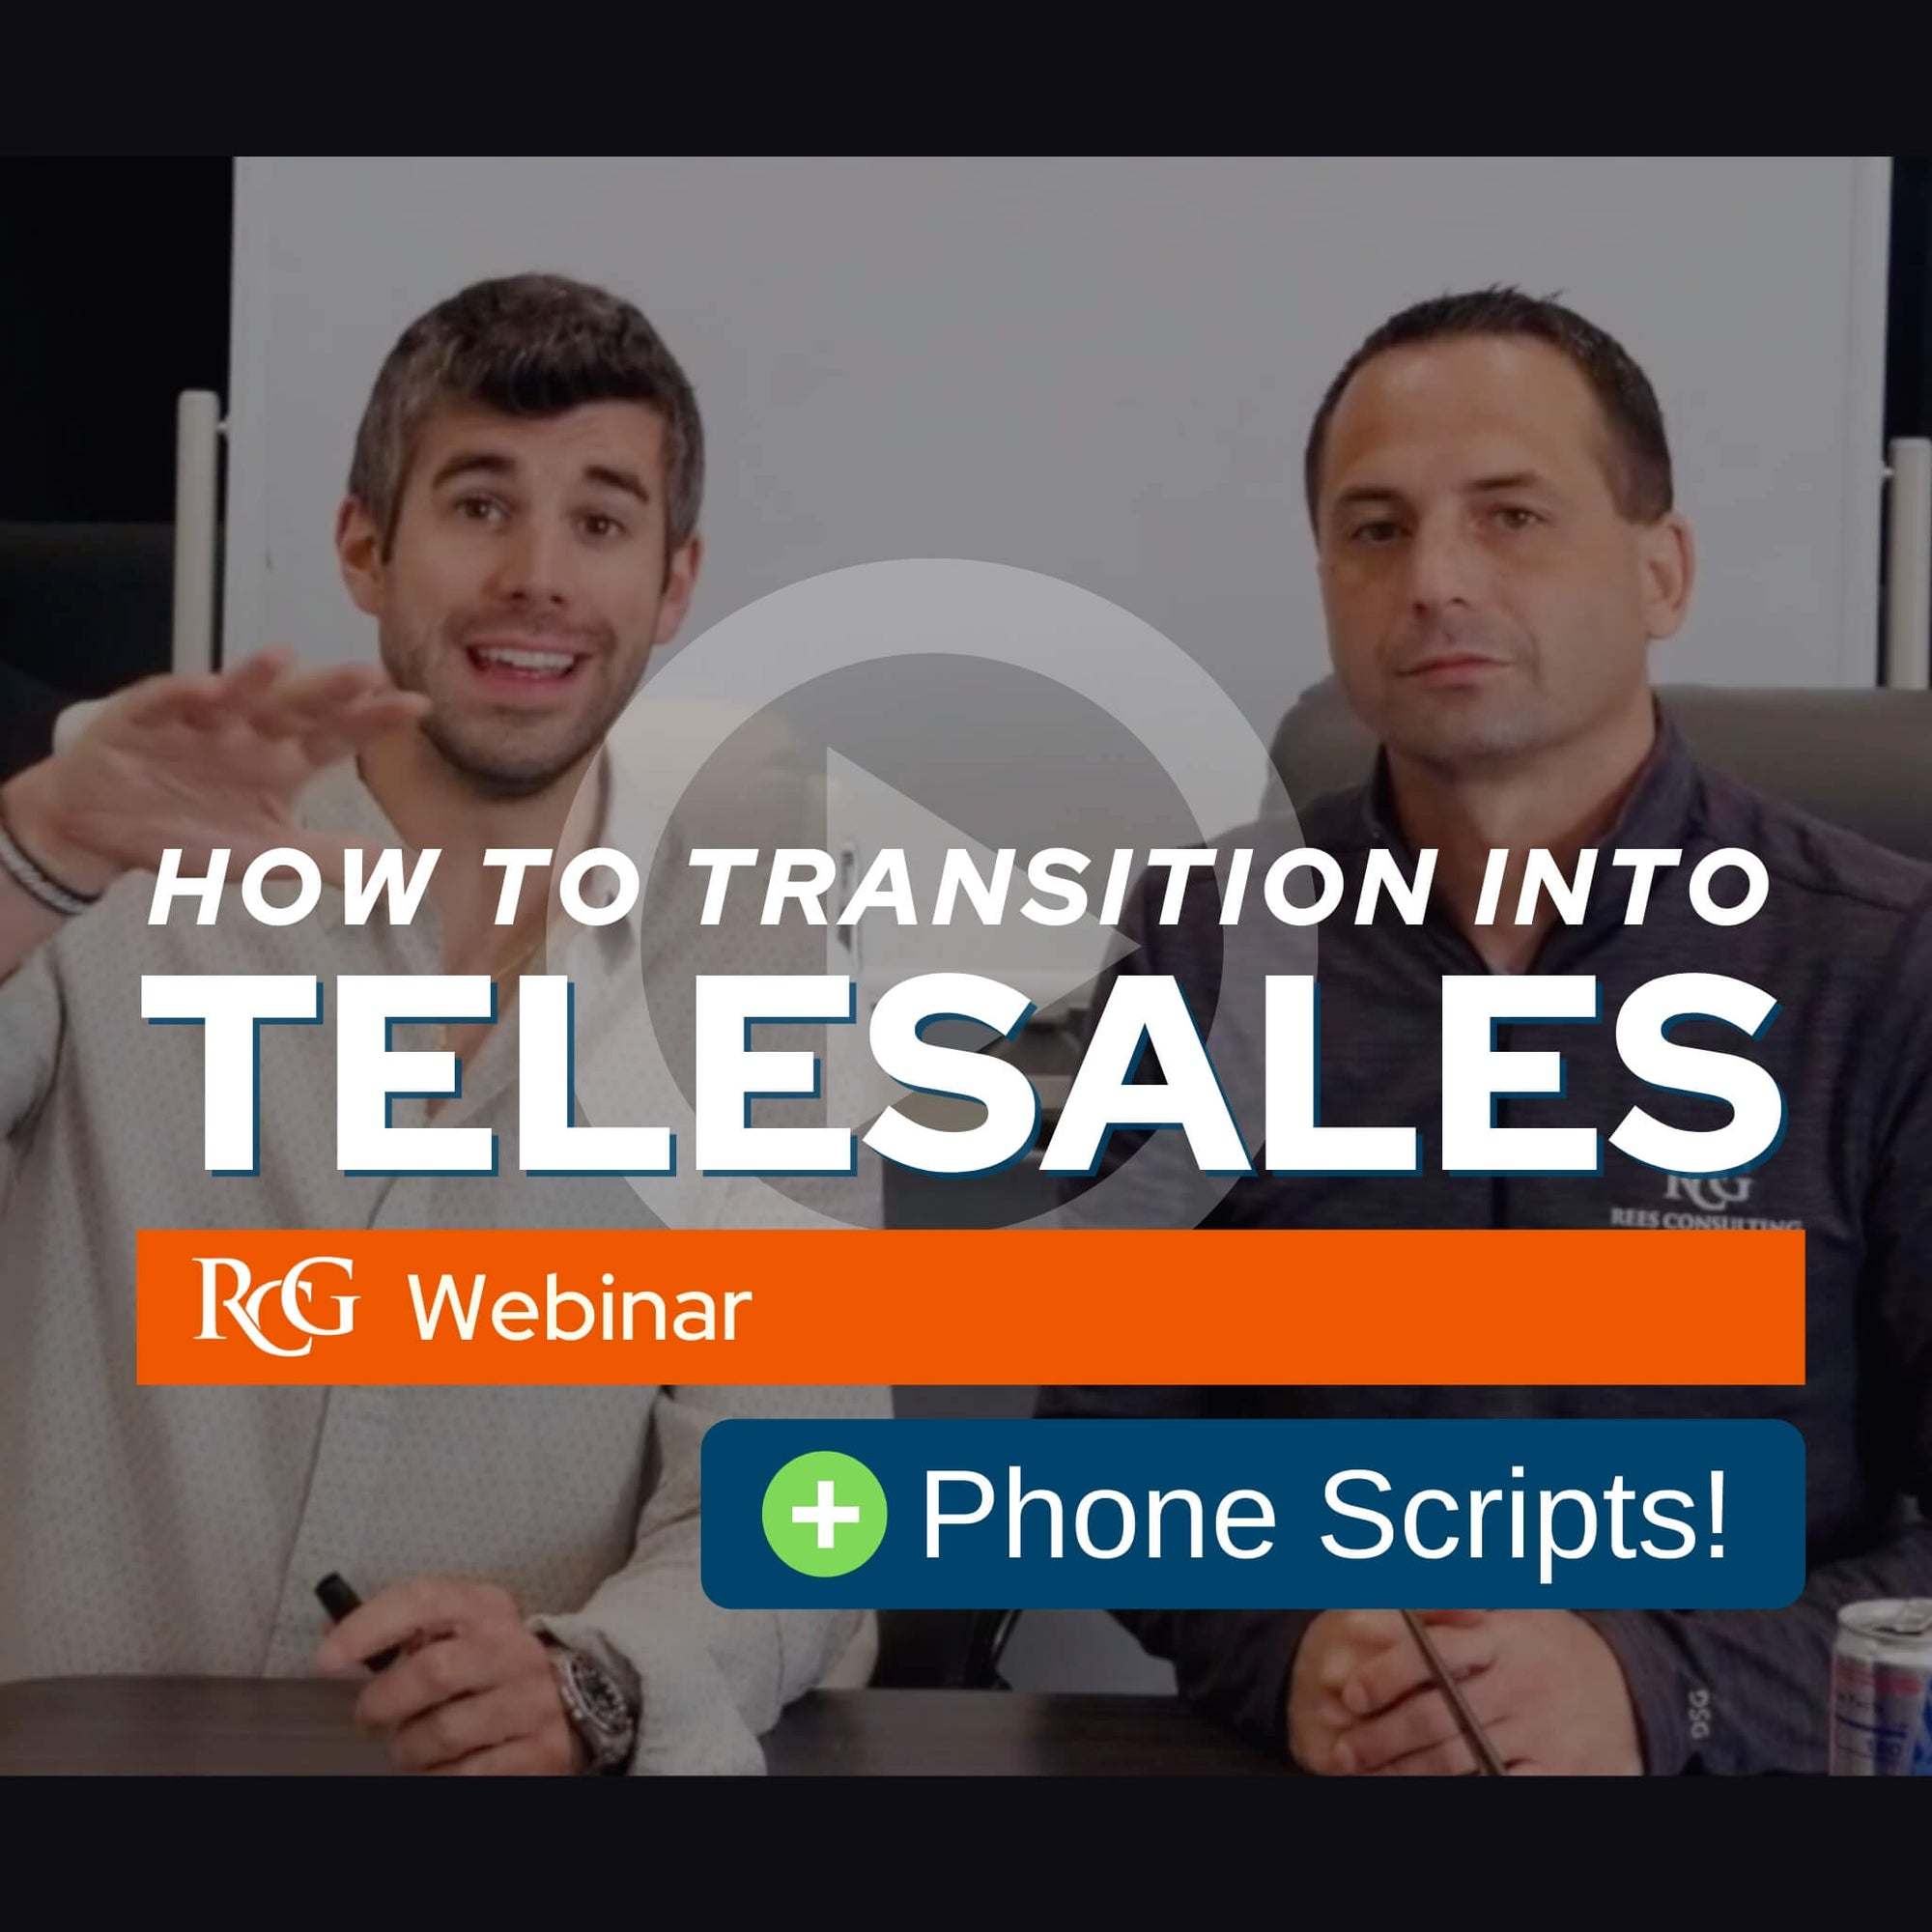 [WEBINAR] How To Transition Into Telesales + Phone Script